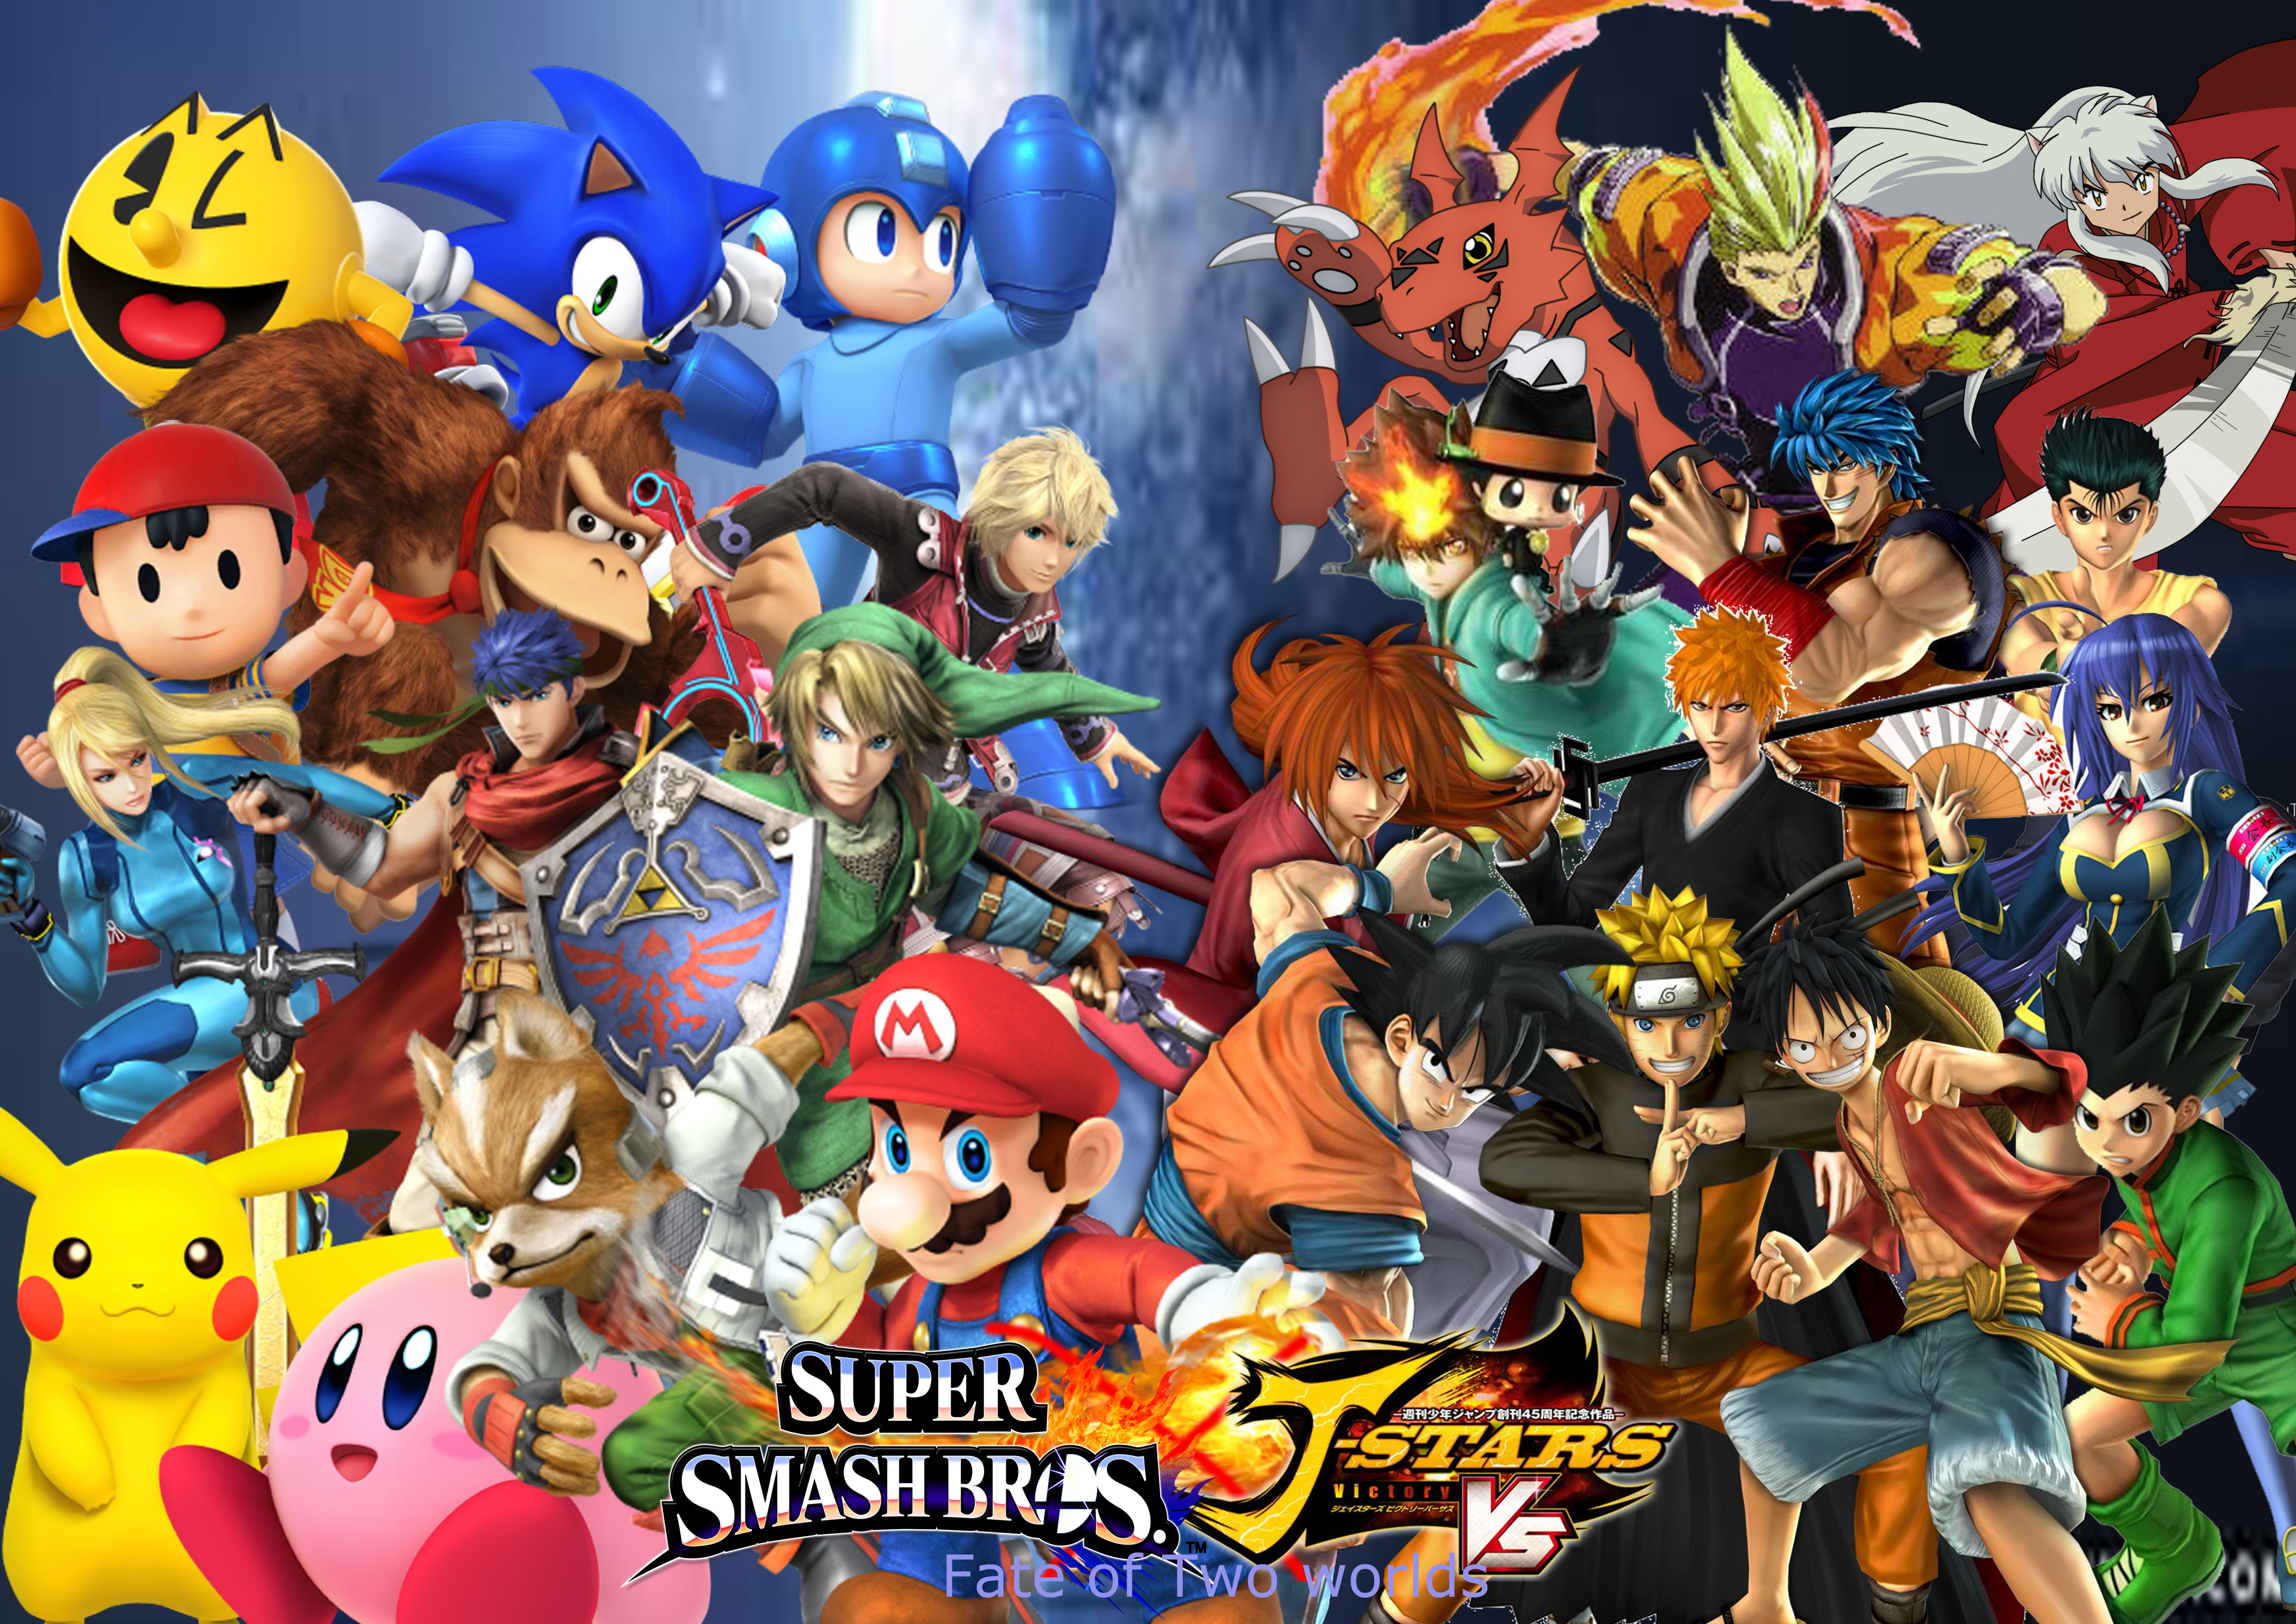 super smash bros x j stars fate of two worlds by